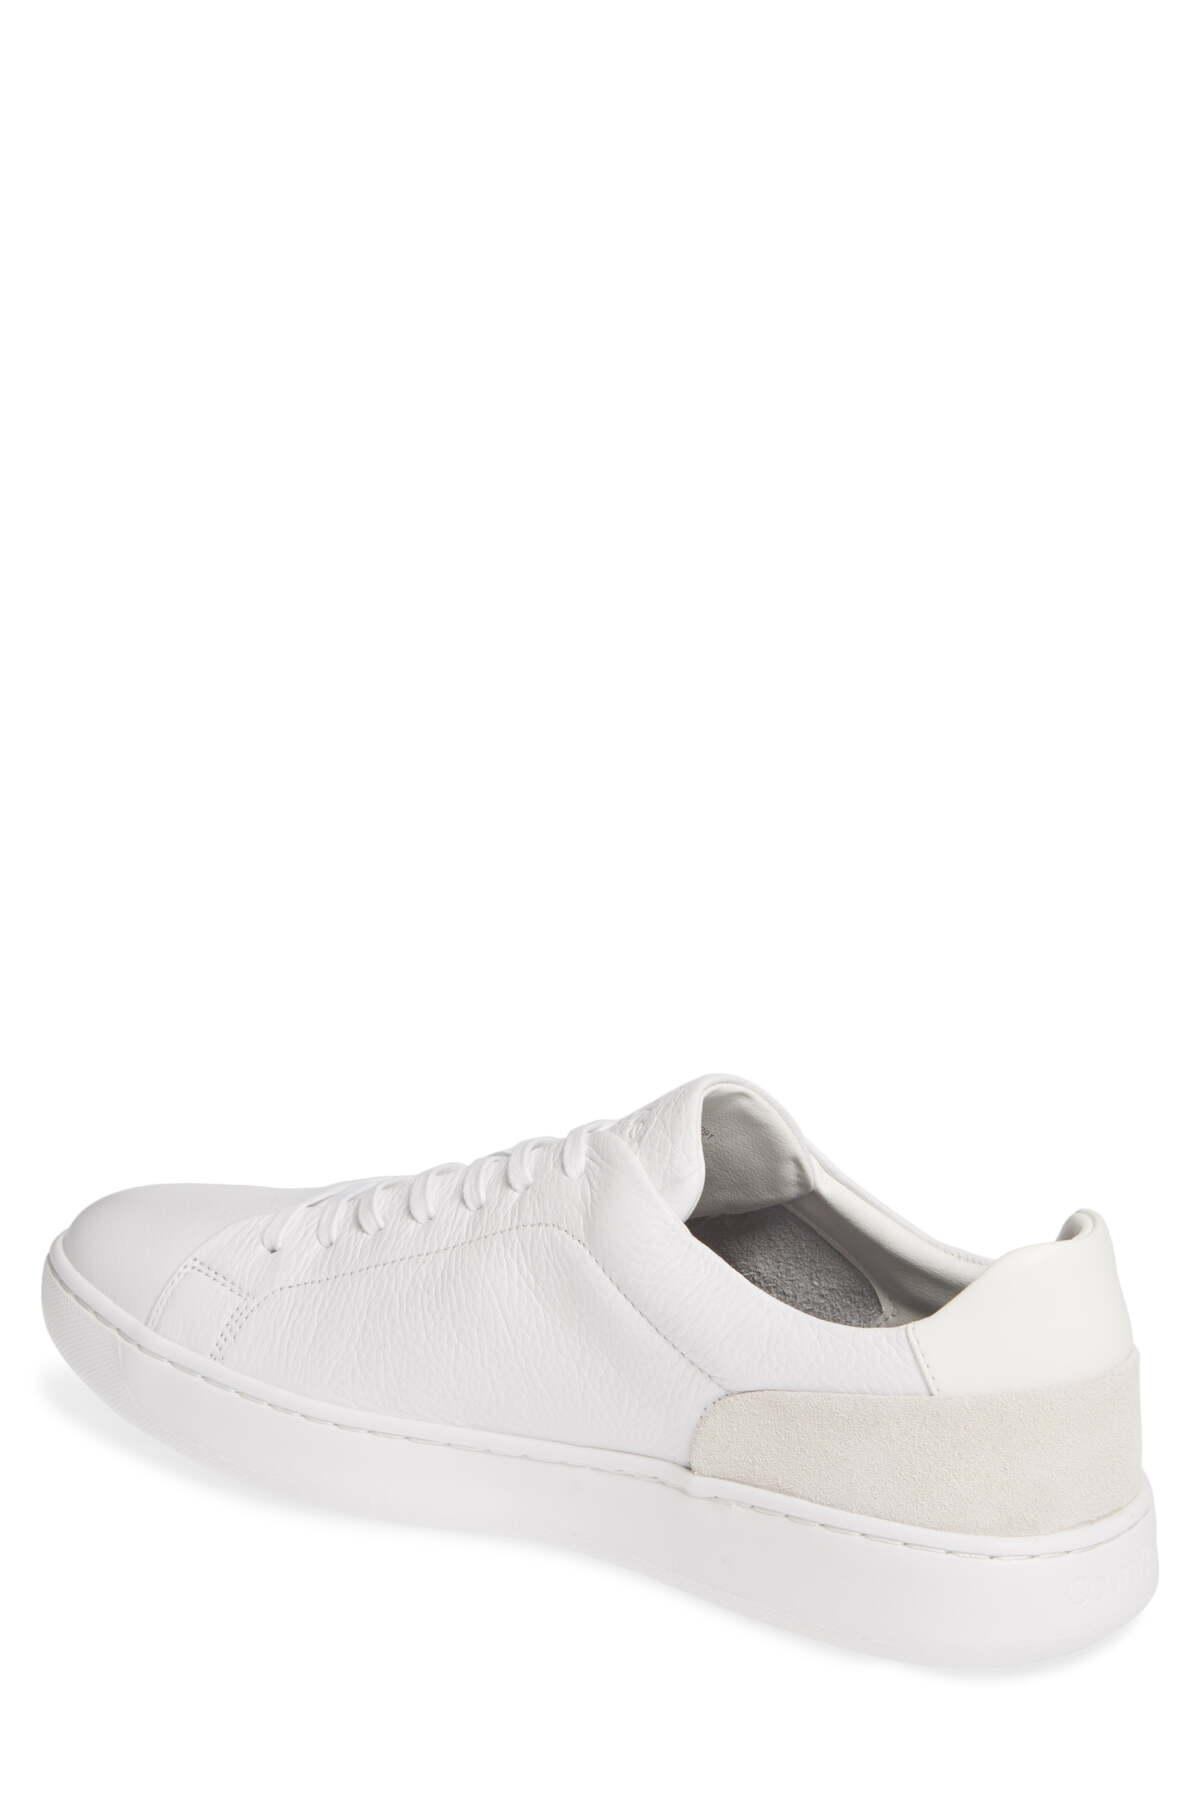 Calvin Klein Leather Fuego Sneaker in